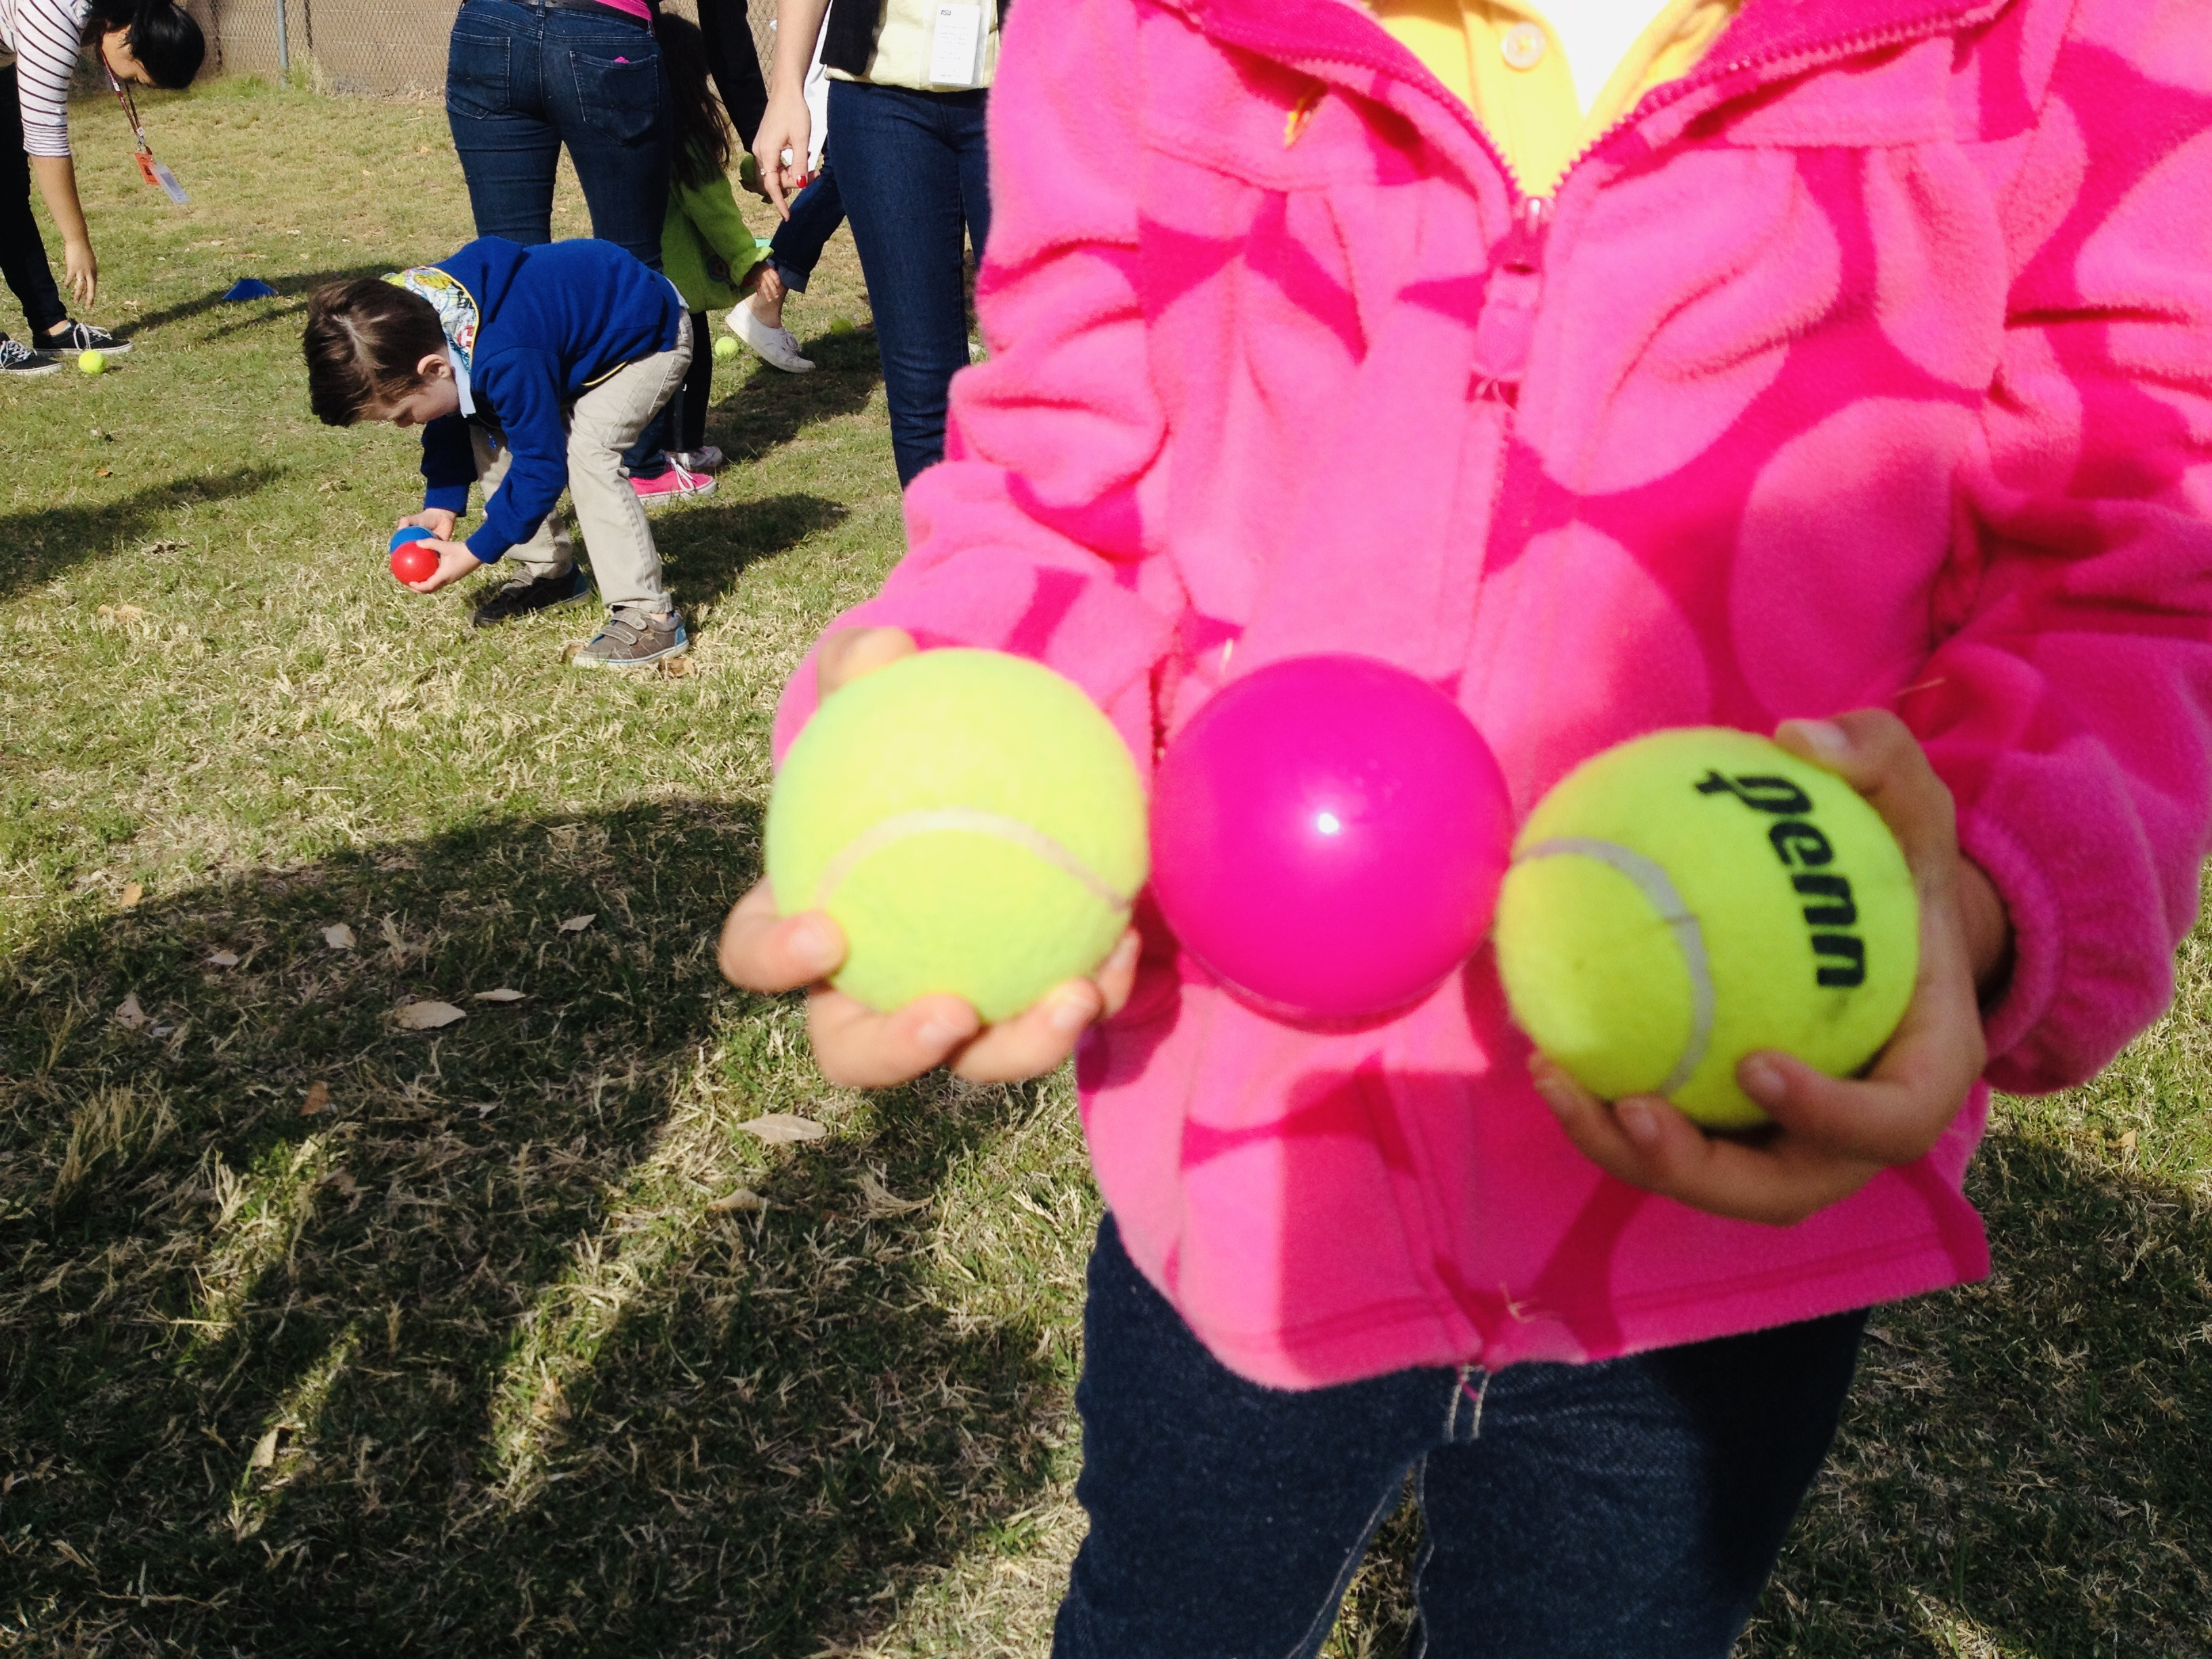 Little girl holding two tennis balls to balance a pink plastic ball in between